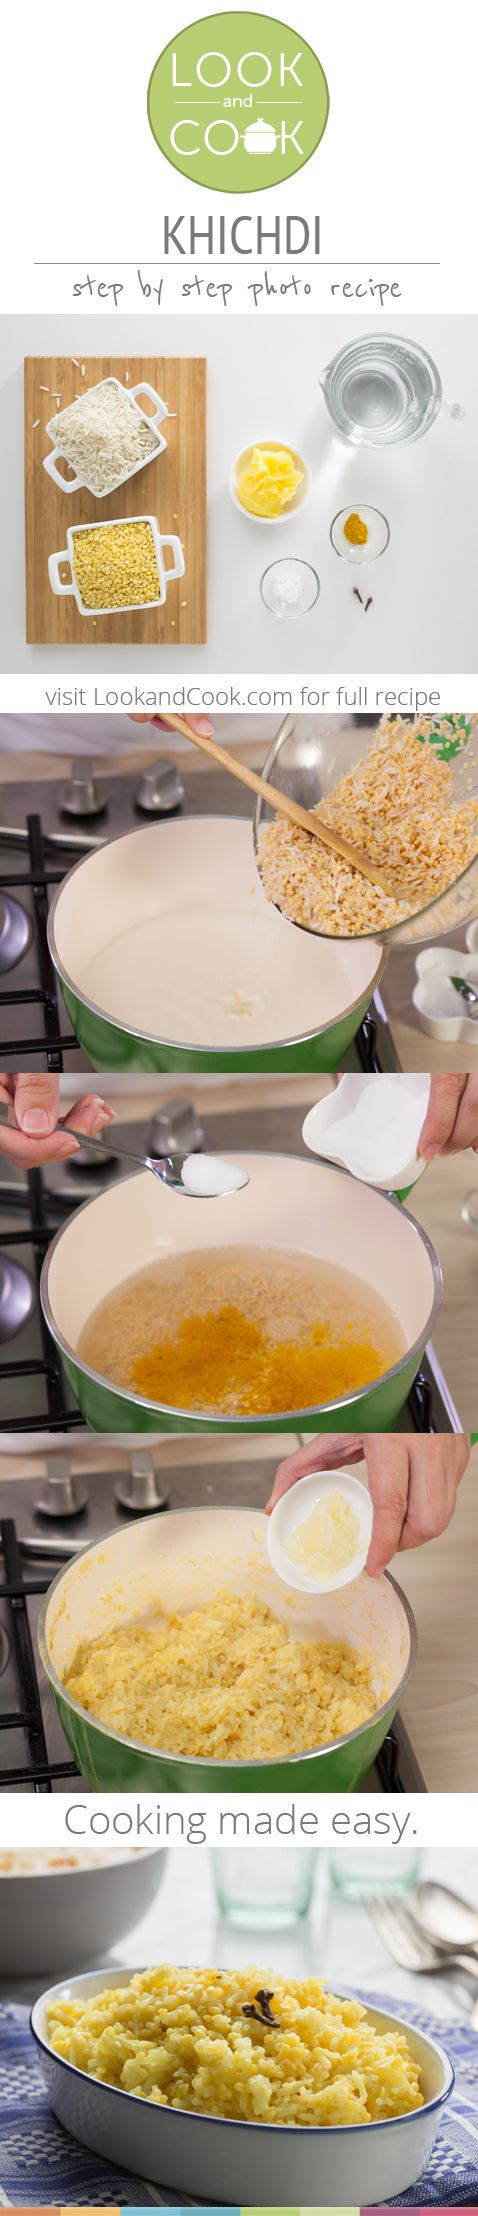 KHICHDI RECIPE Khichdi recipe (#LC14142): This Moong Dal Khichdi is a wholesome comfort food cooked with rice and tastes best when served with some hot ghee.Get step by step photo recipe at lookandcook.com